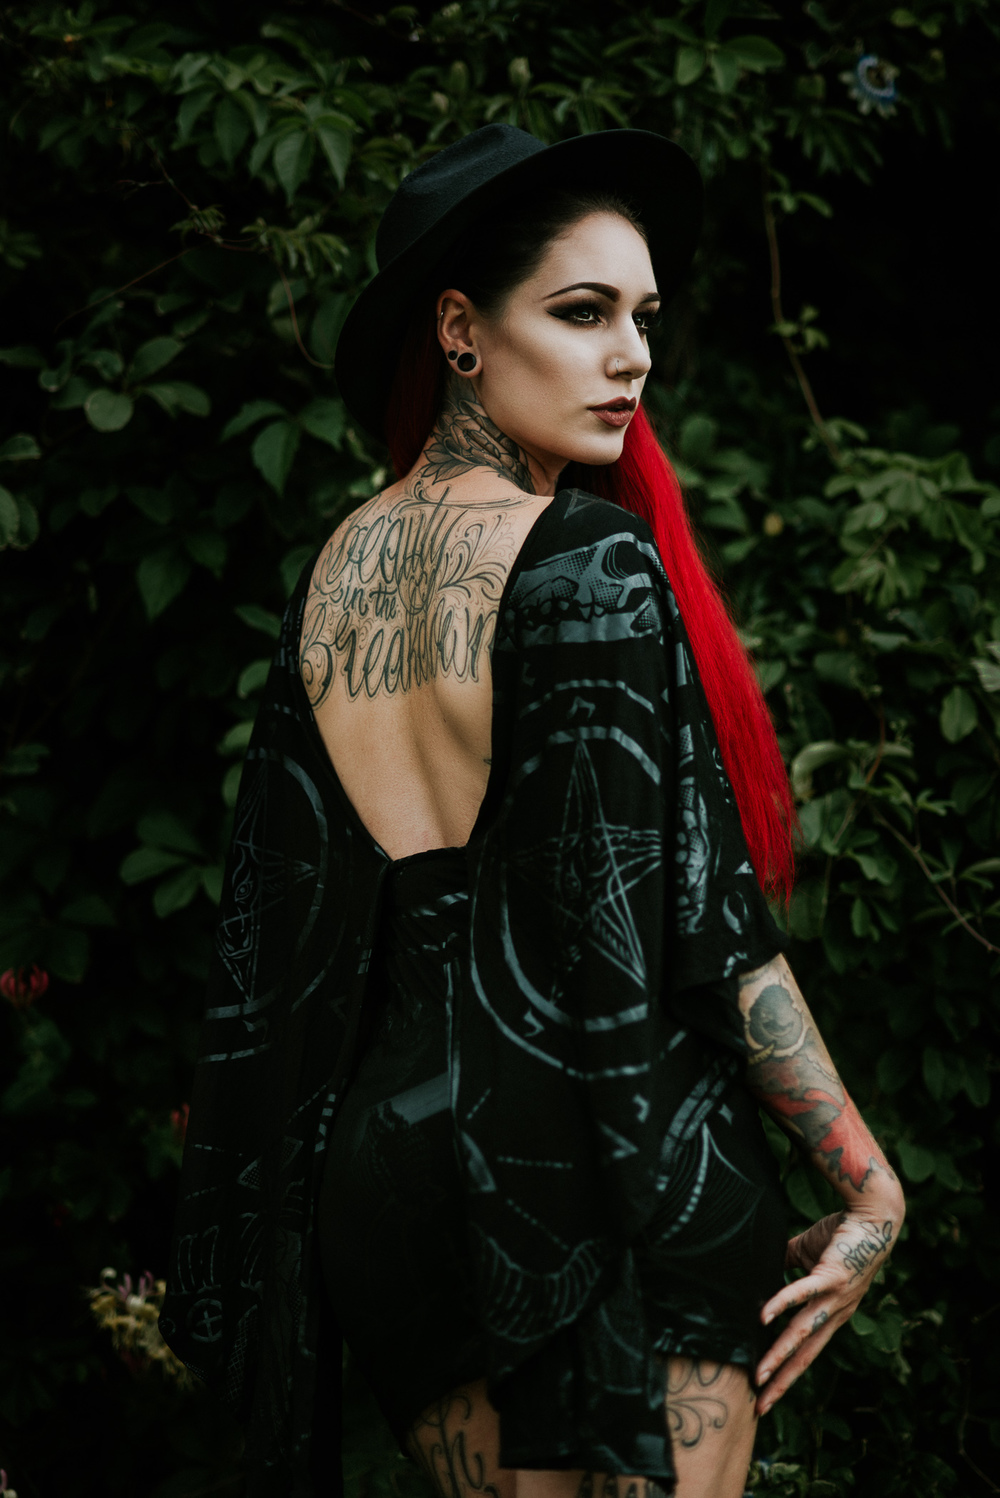 2016-22-17_Cervena_Fox-Timothy_Nguyen (3 of 10).jpg